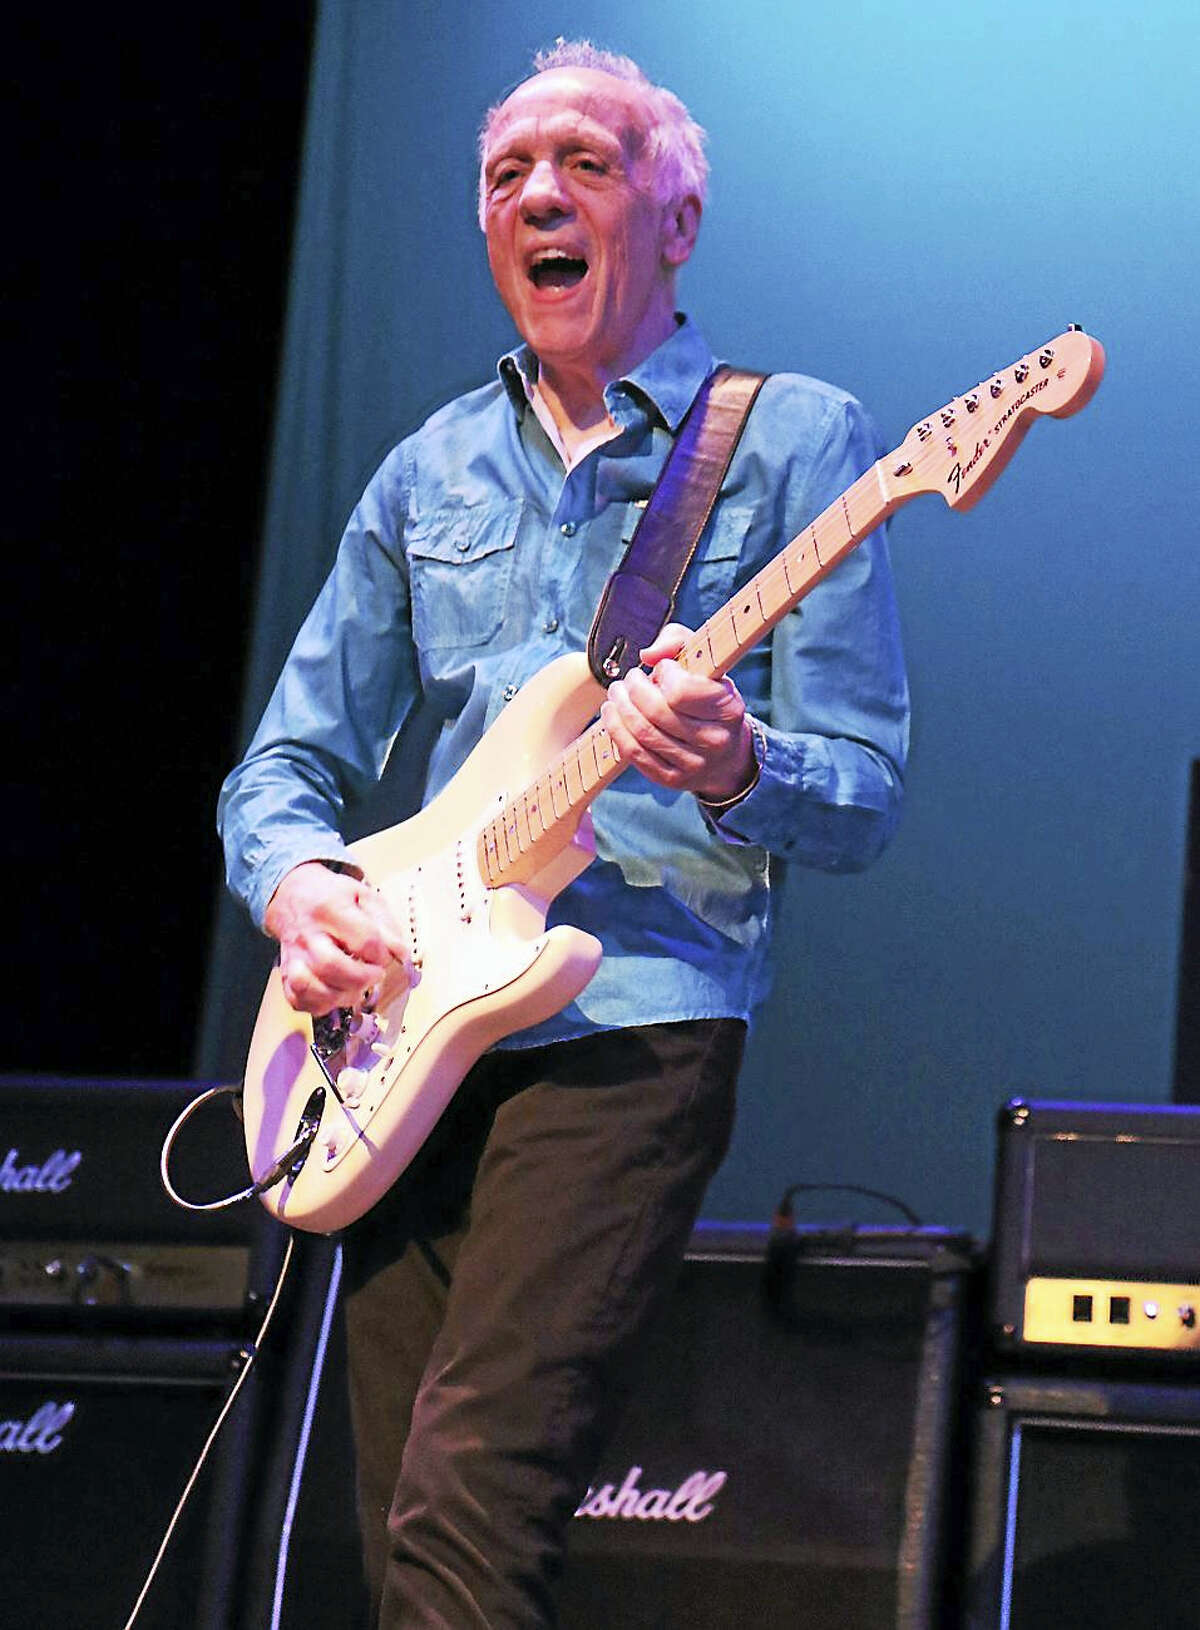 """Photo by John Atashian Guitarist and singer Robin Trower, who achieved success with Procol Harum during the 1960s, is shown performing on stage during his appearance at the Ridgfield Playhouse on Saturday night April 23rd. The English rock guitar legend attracted a capacity crowd of fans and treated them to his biggest hits plus songs from his new brand new album """"Where You Are Going To""""."""